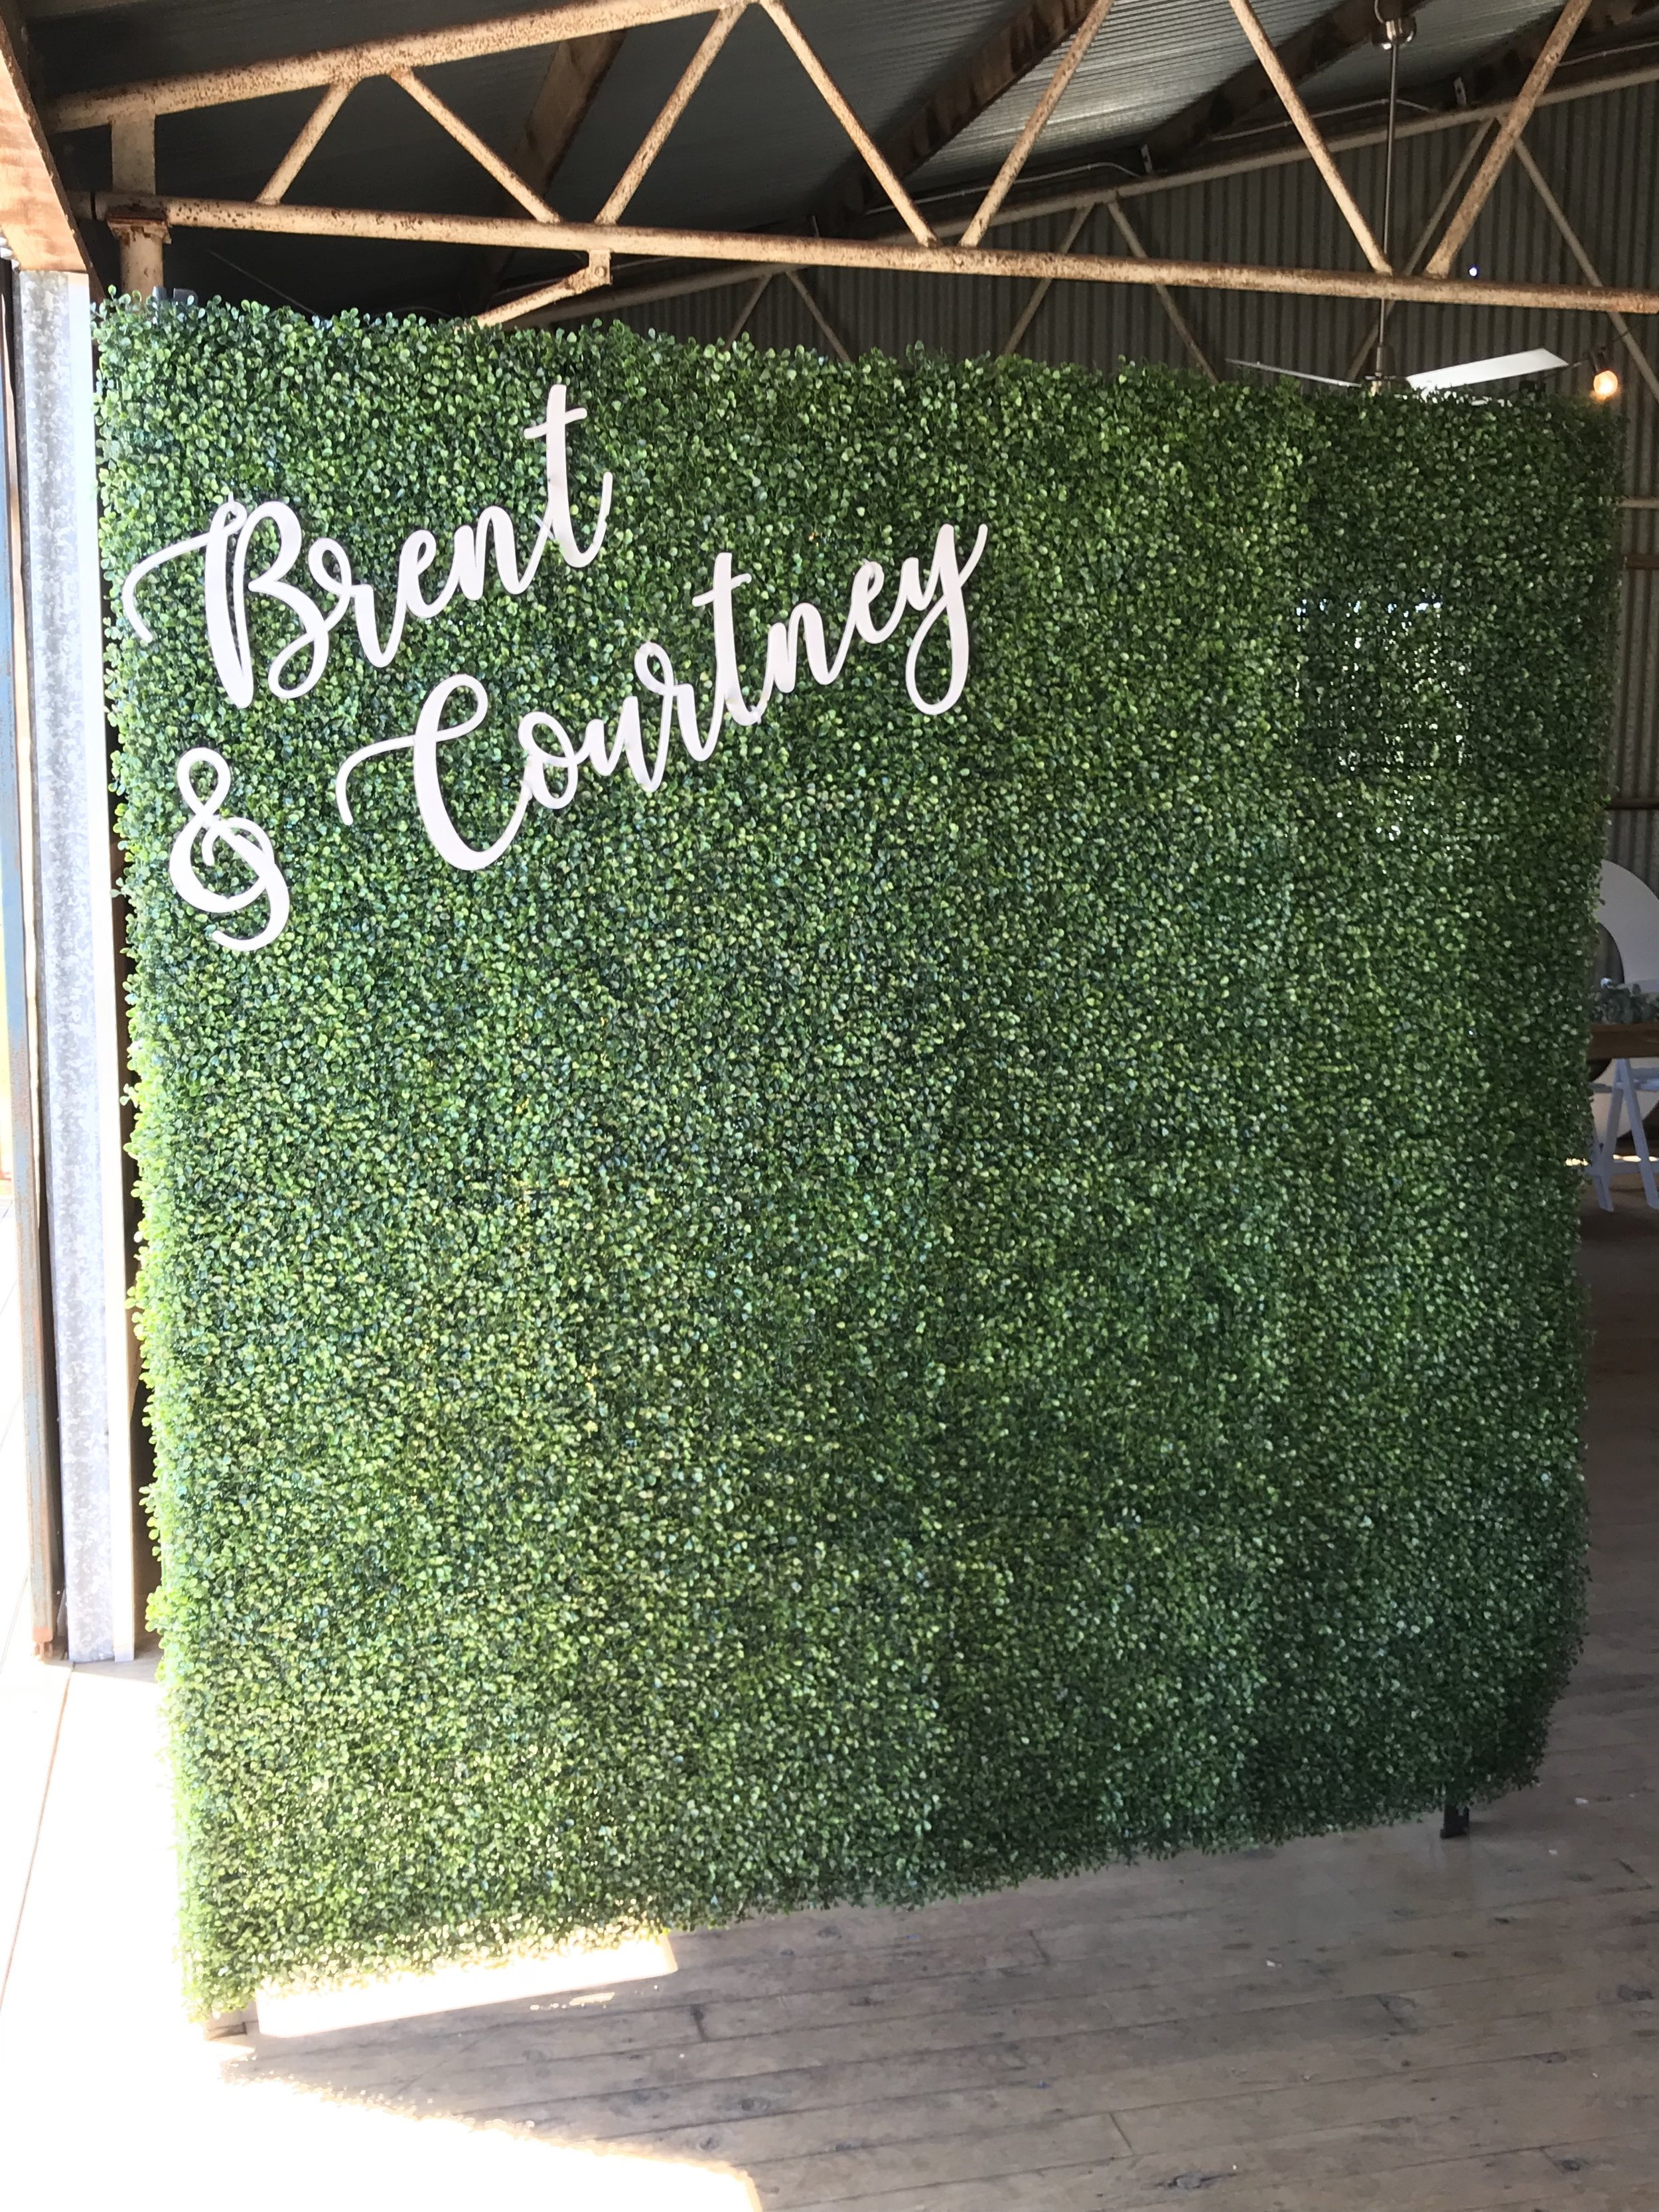 GREEN WALL 2MX2M PLEASE CONTACT ME VIA FACEBOOK BUSINESS PAGE OR EMAIL FOR BOOKINGS. (LOCAL WANGARATTA AREA ONLY)